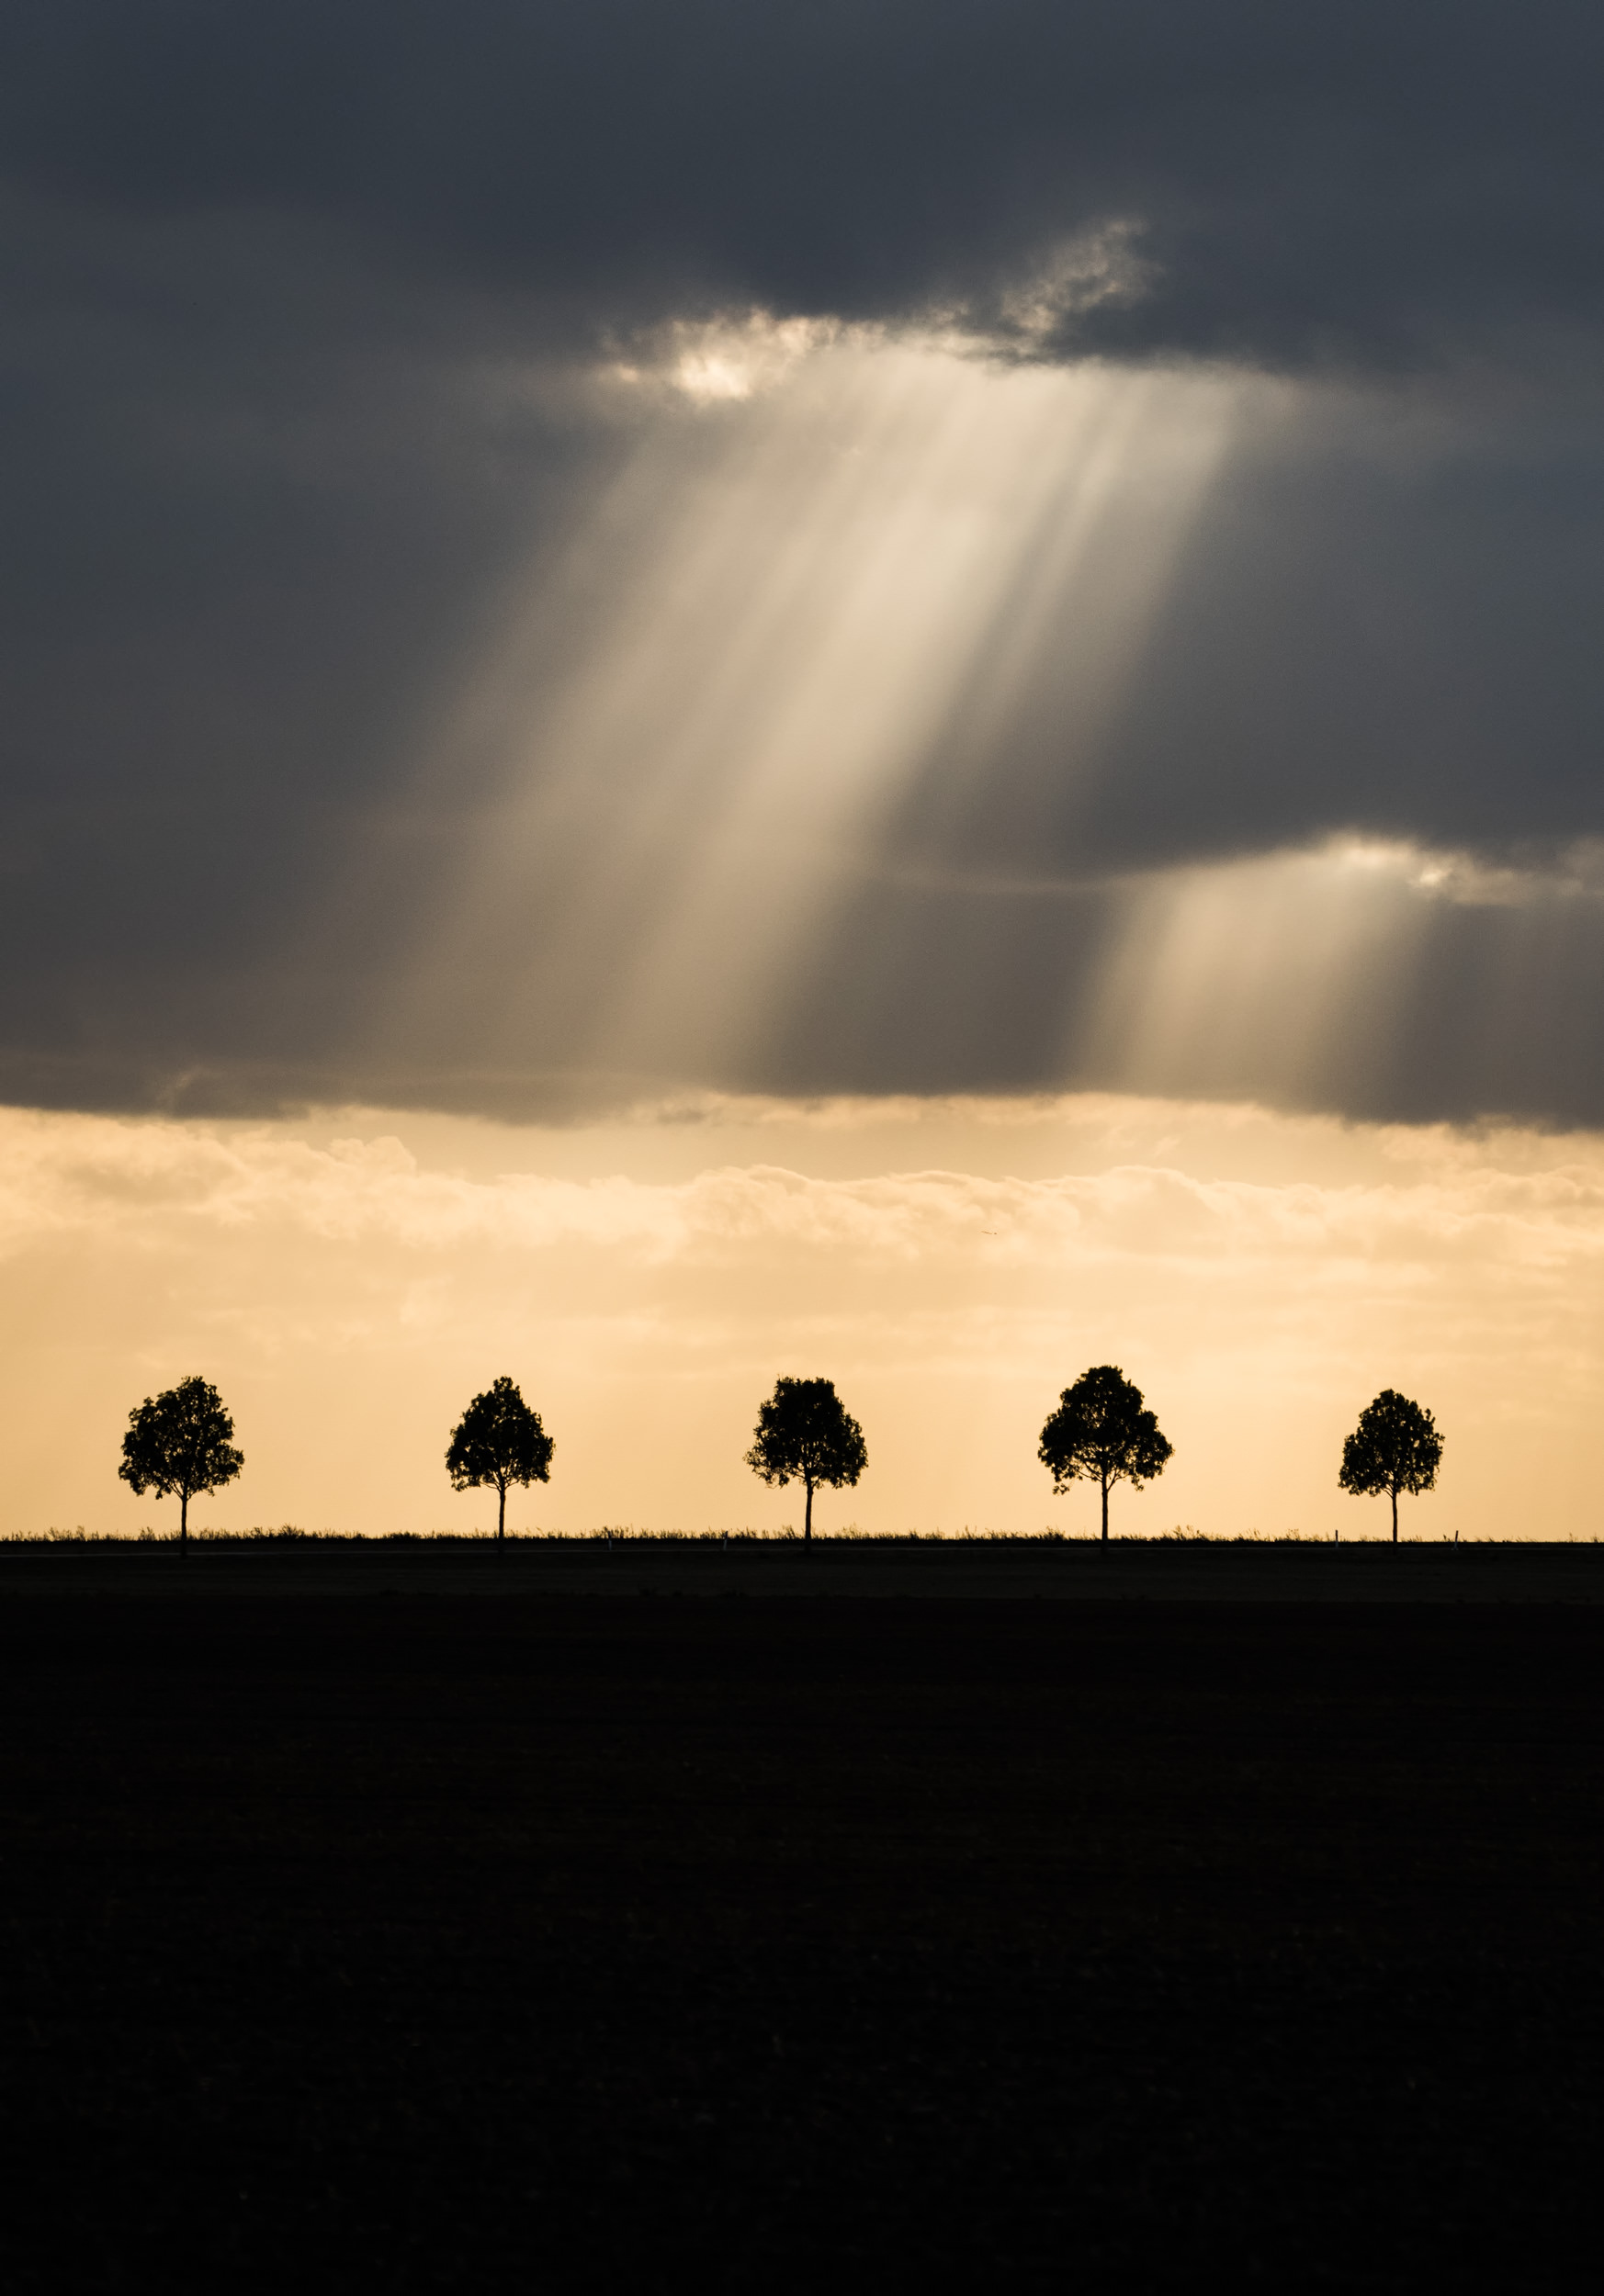 Sunbeams breaking through clouds in Saxony - Landscape Photographer